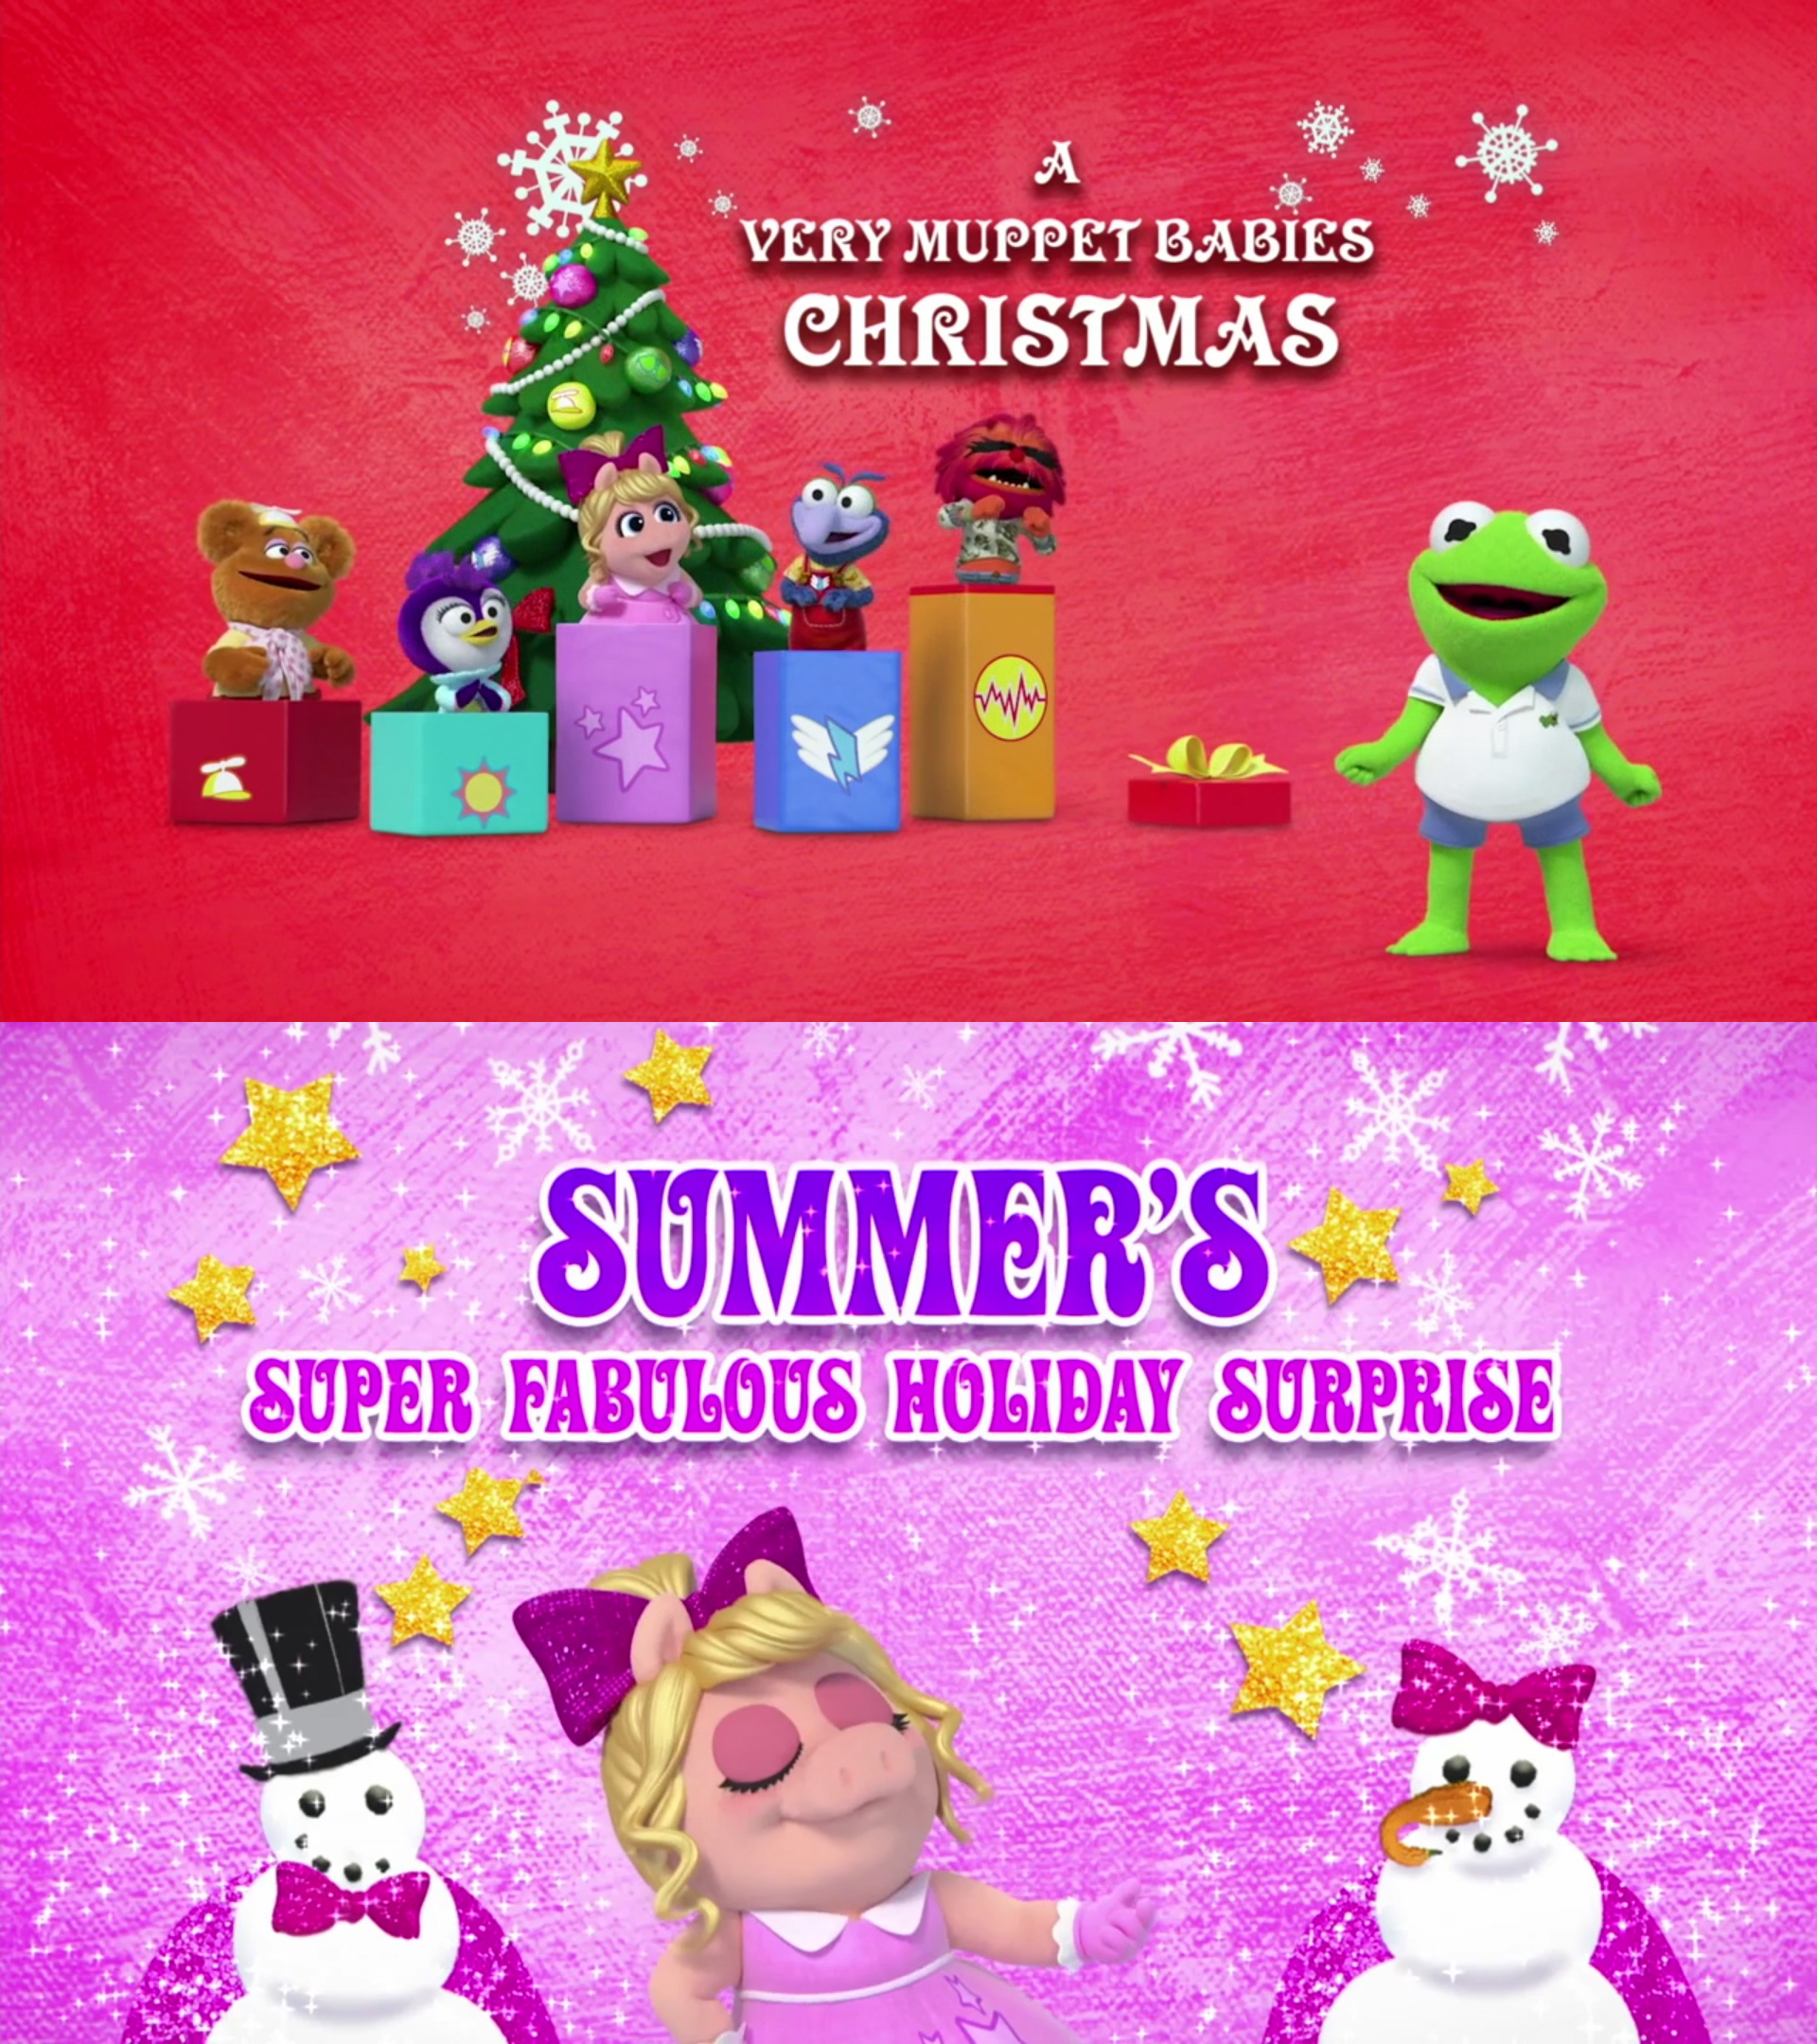 Episode 117: A Very Muppet Babies Christmas / Summer's